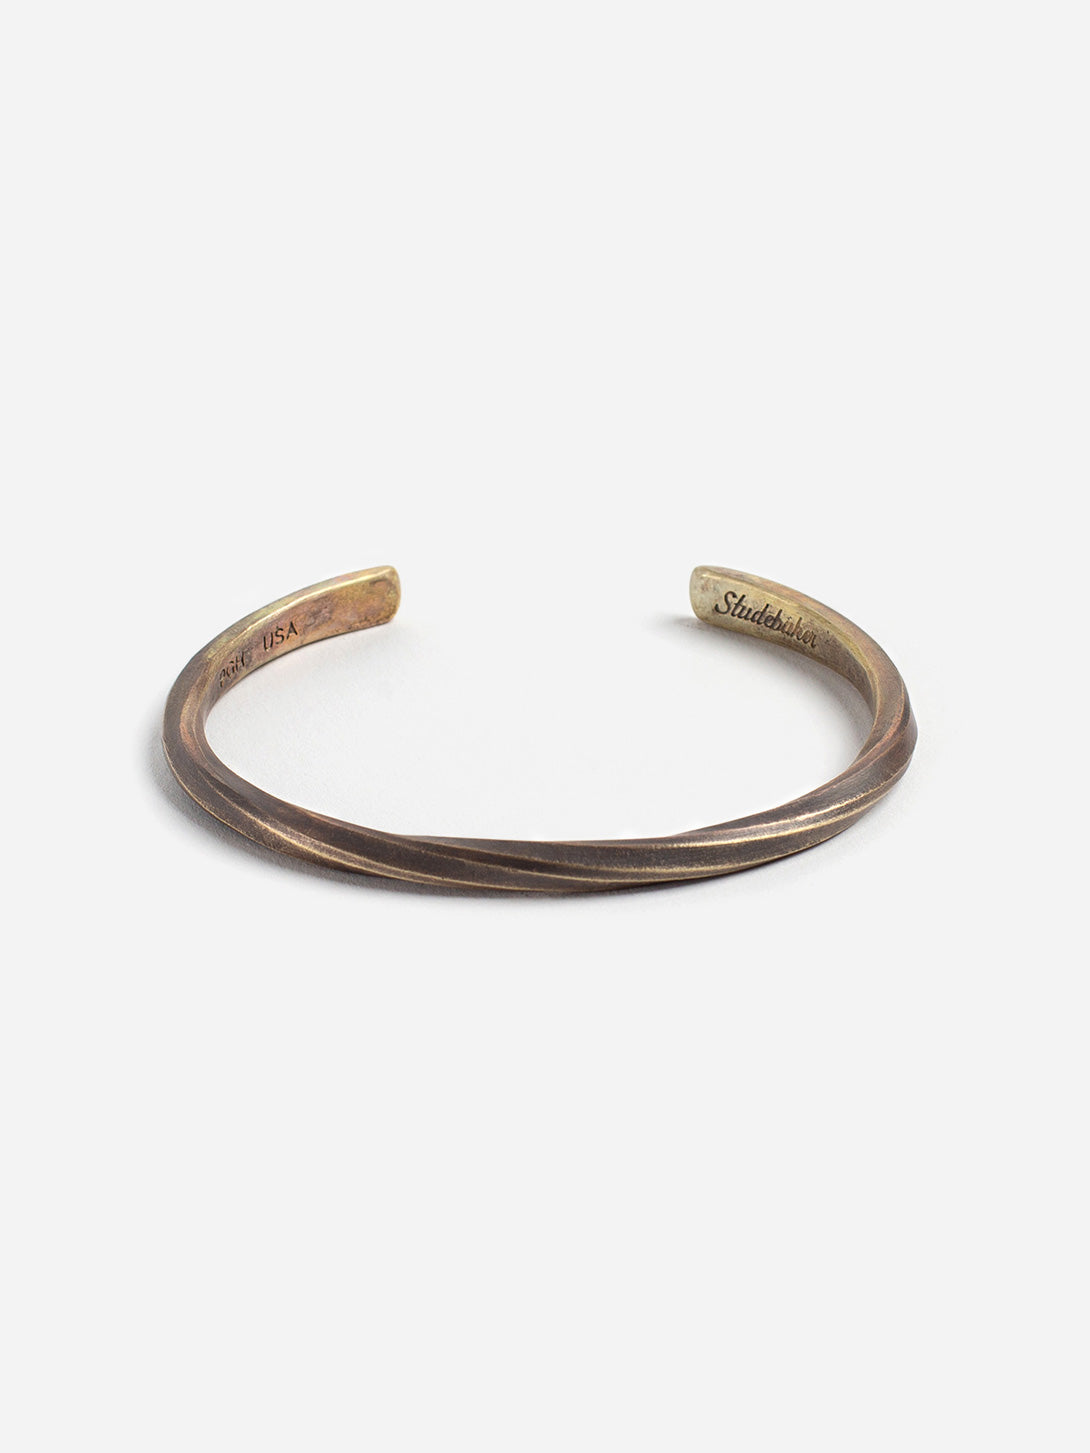 BRASS - PATINA cuff for men and women by Studebaker Metals